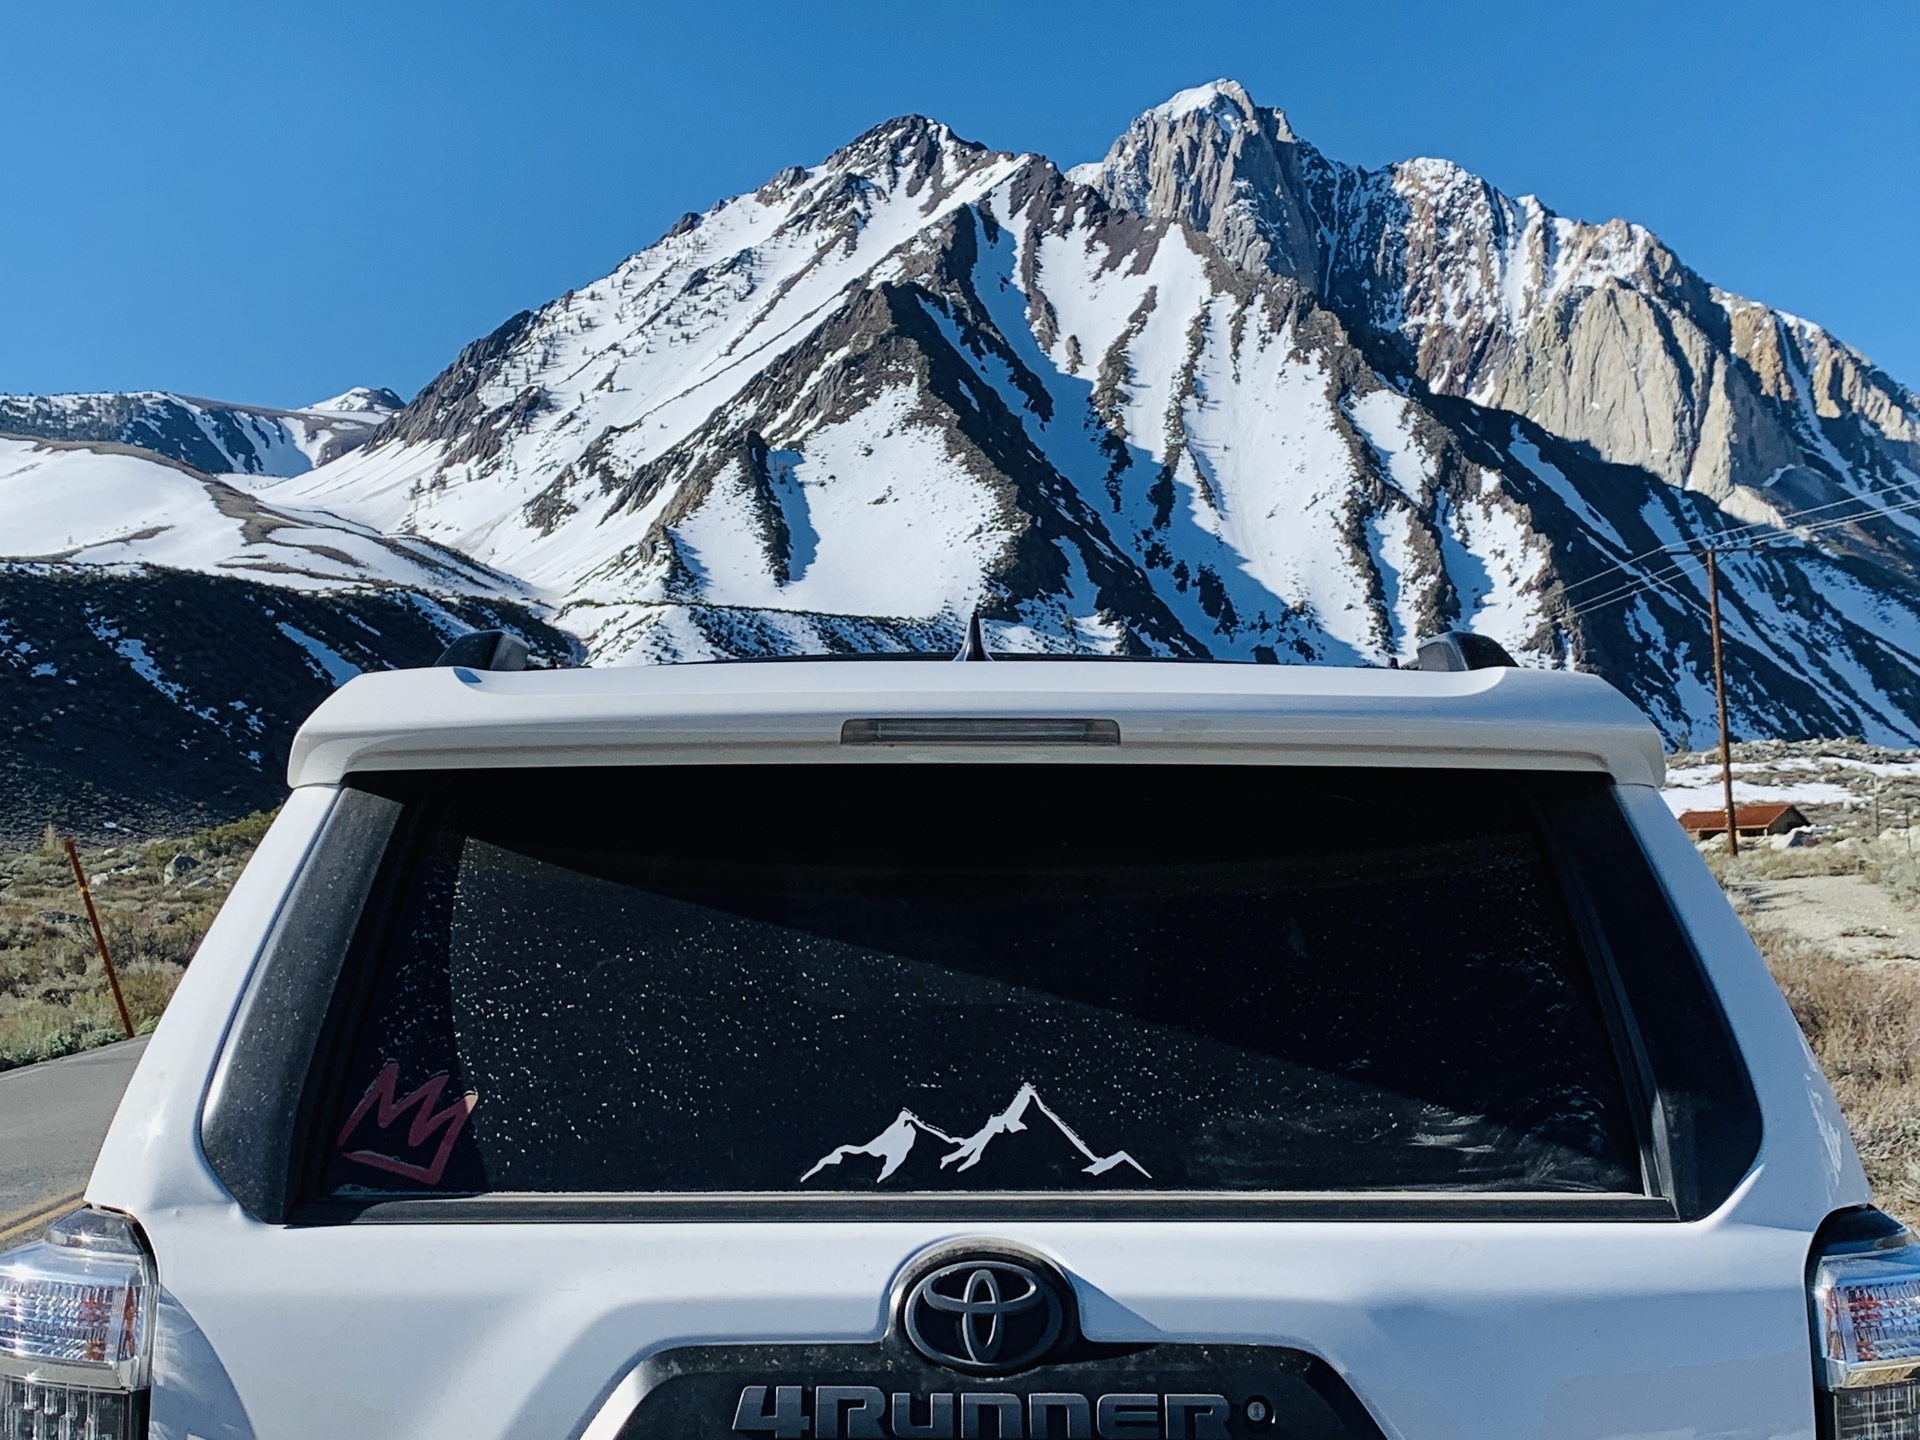 William's photograph of their Mountains Sticker